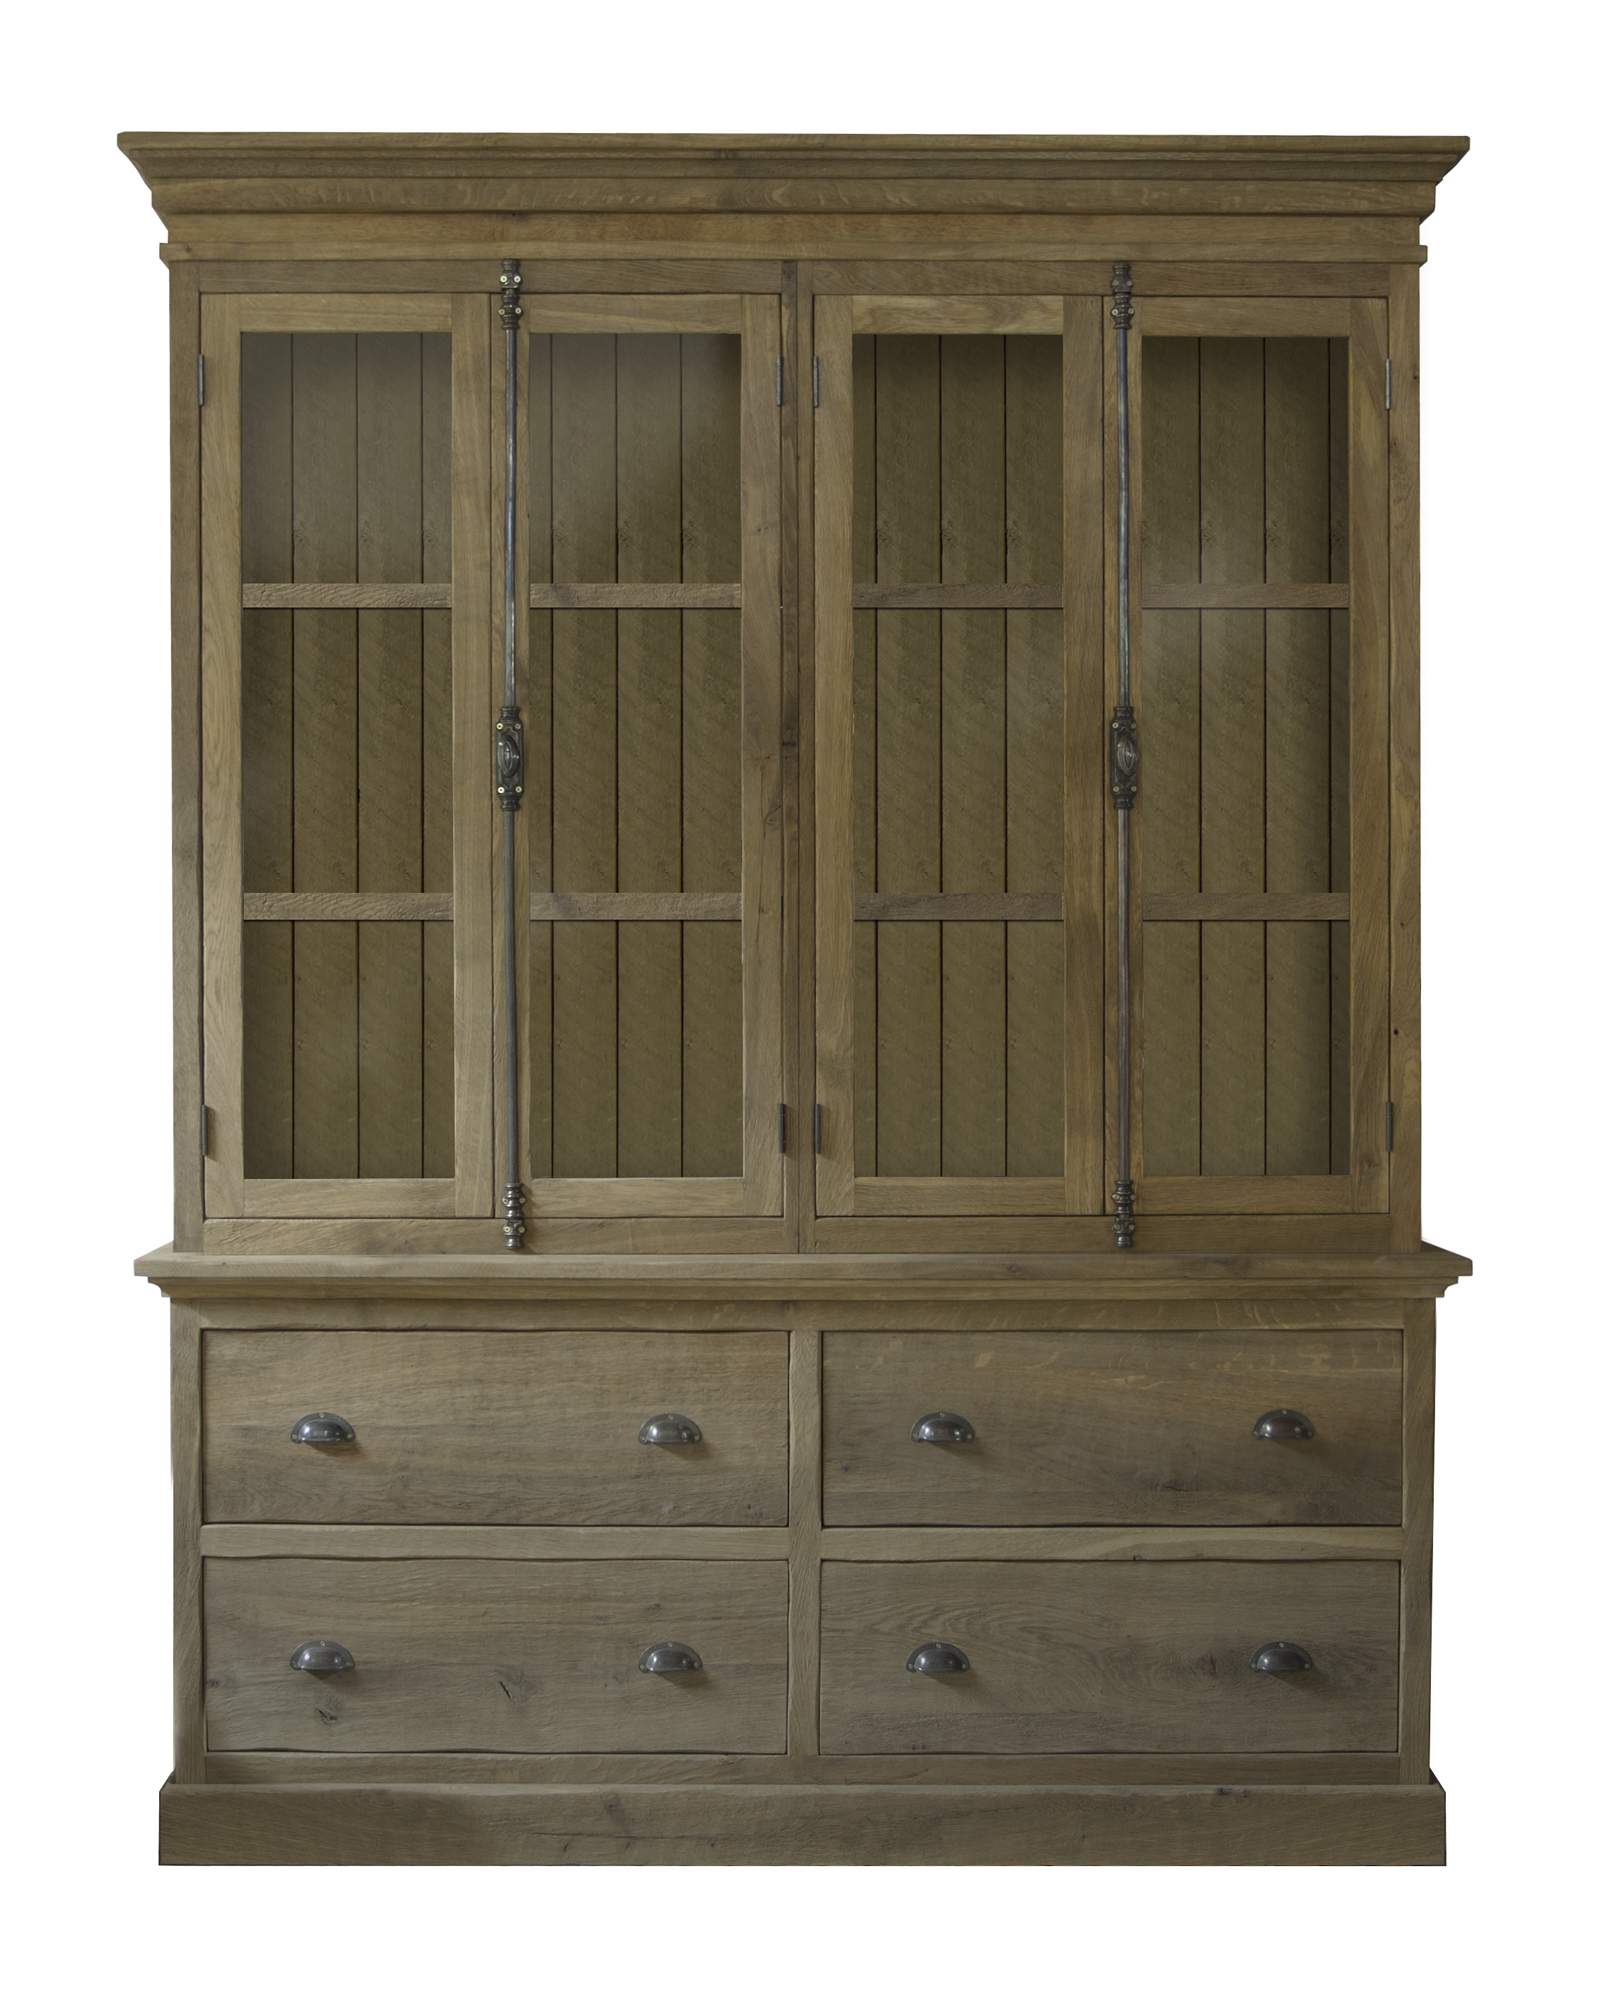 cabinet reclaimed oak. Black Bedroom Furniture Sets. Home Design Ideas